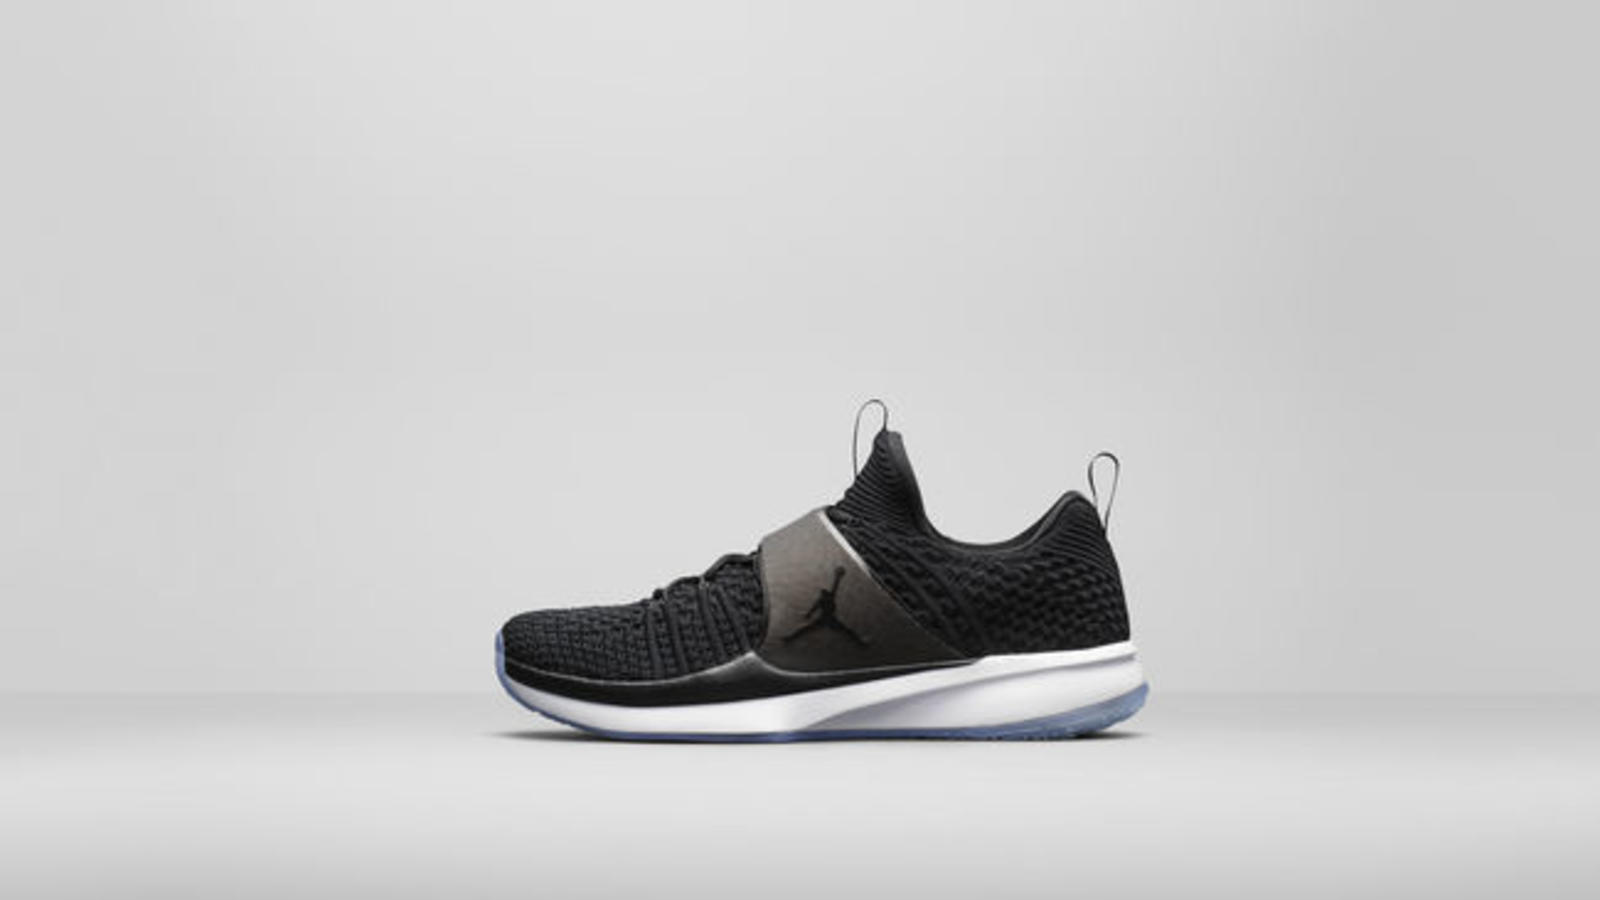 Introducing the Jordan Trainer 2 Flyknit 8